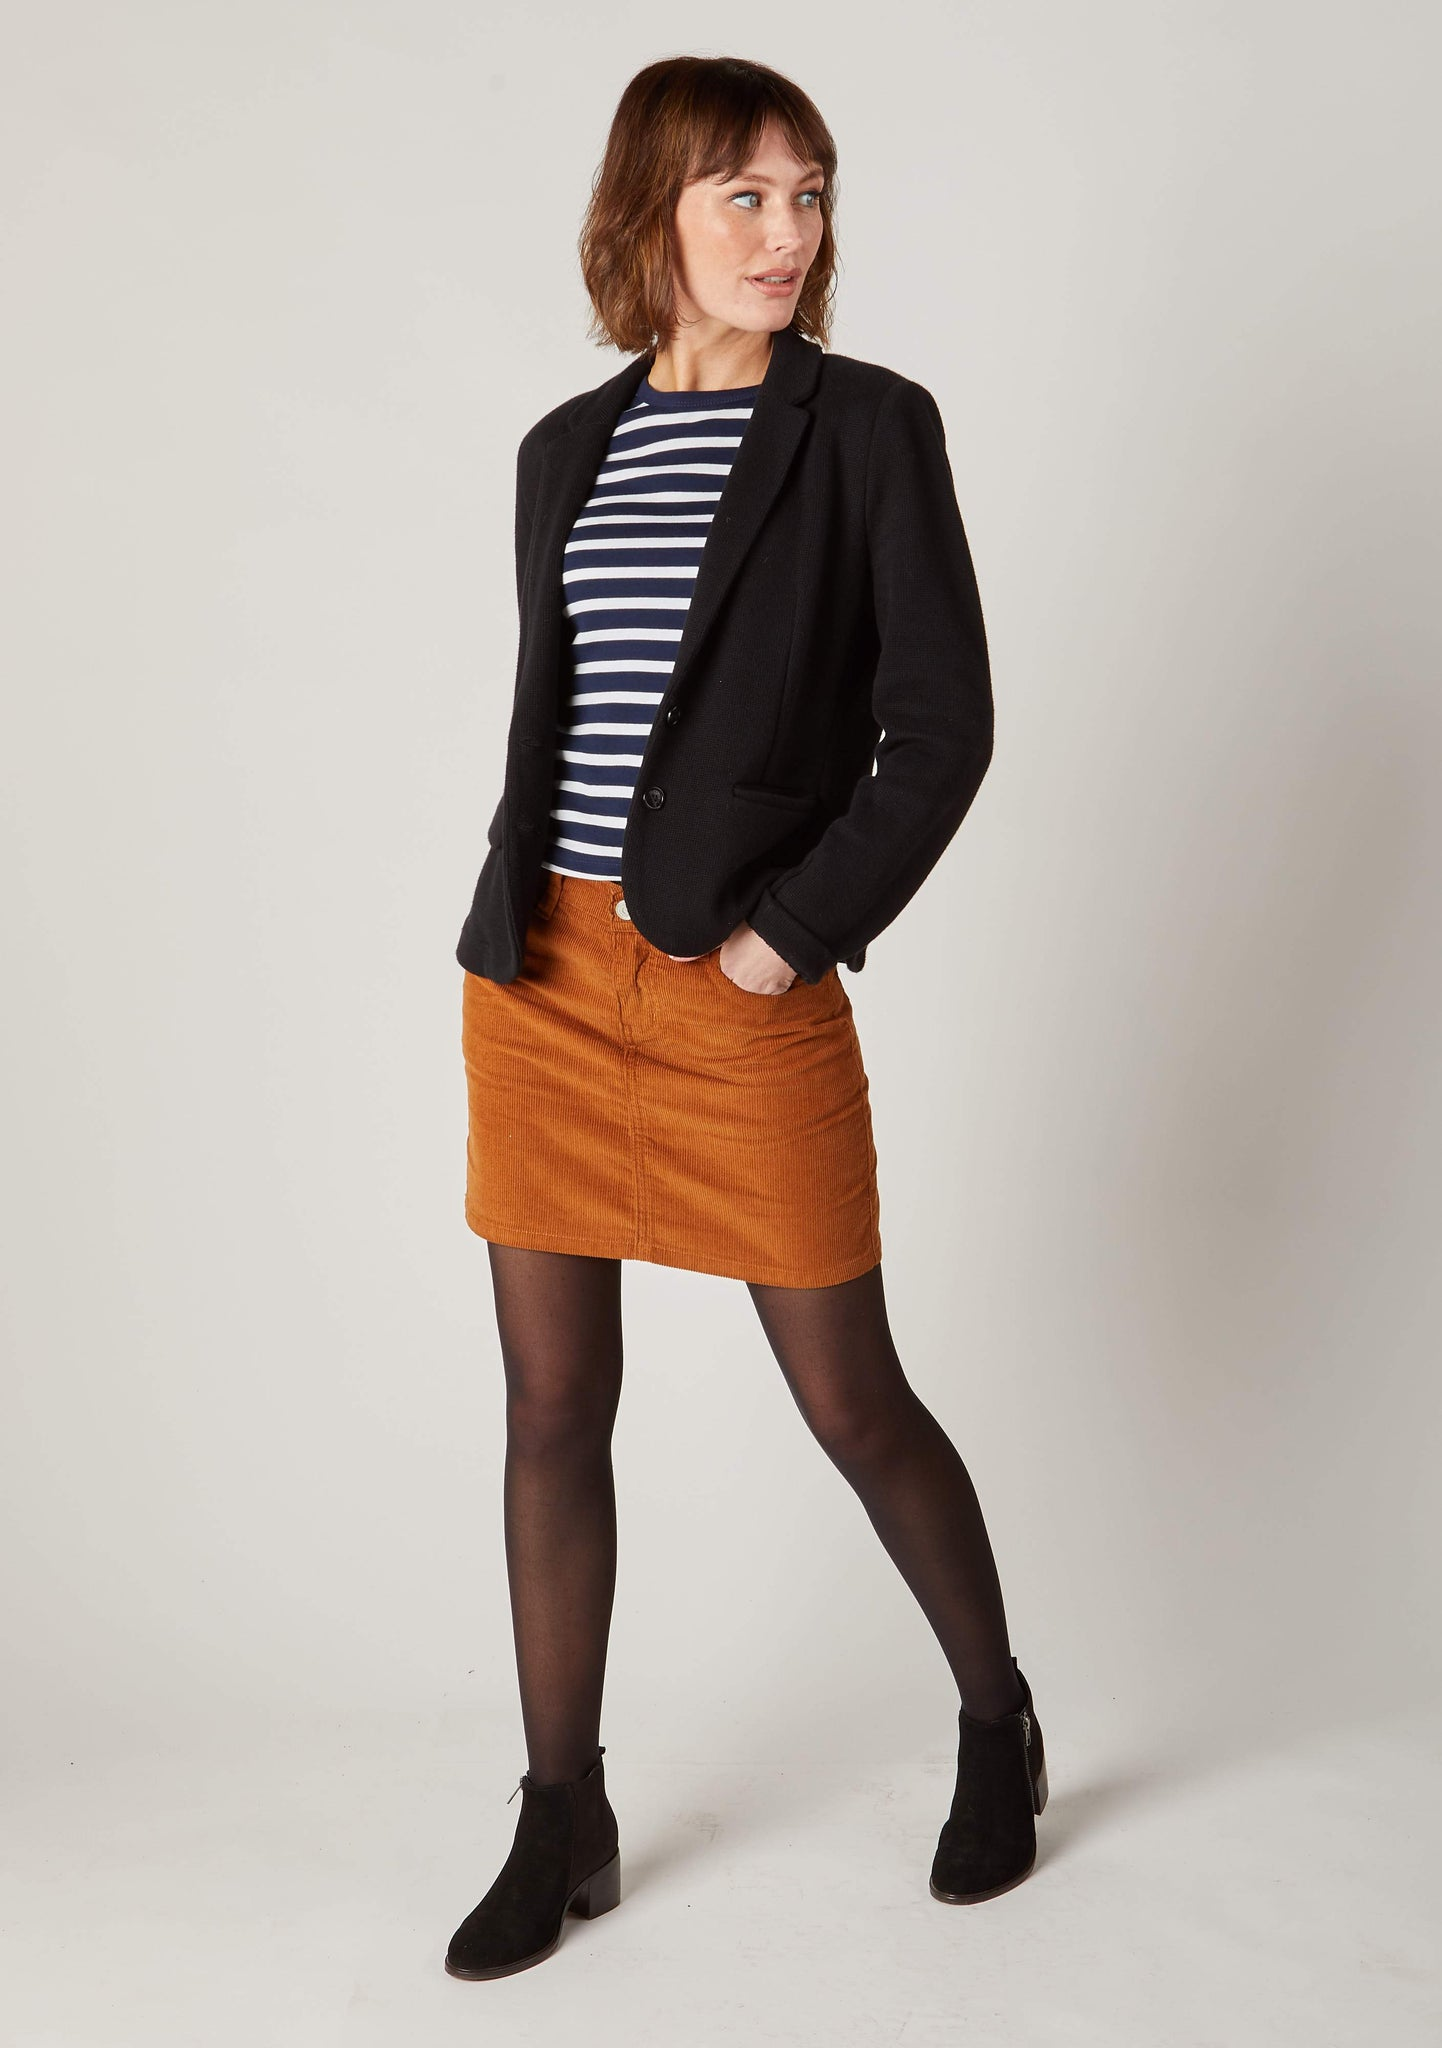 Front view of mid-thigh length brown cord skirt with hand in side pocket.